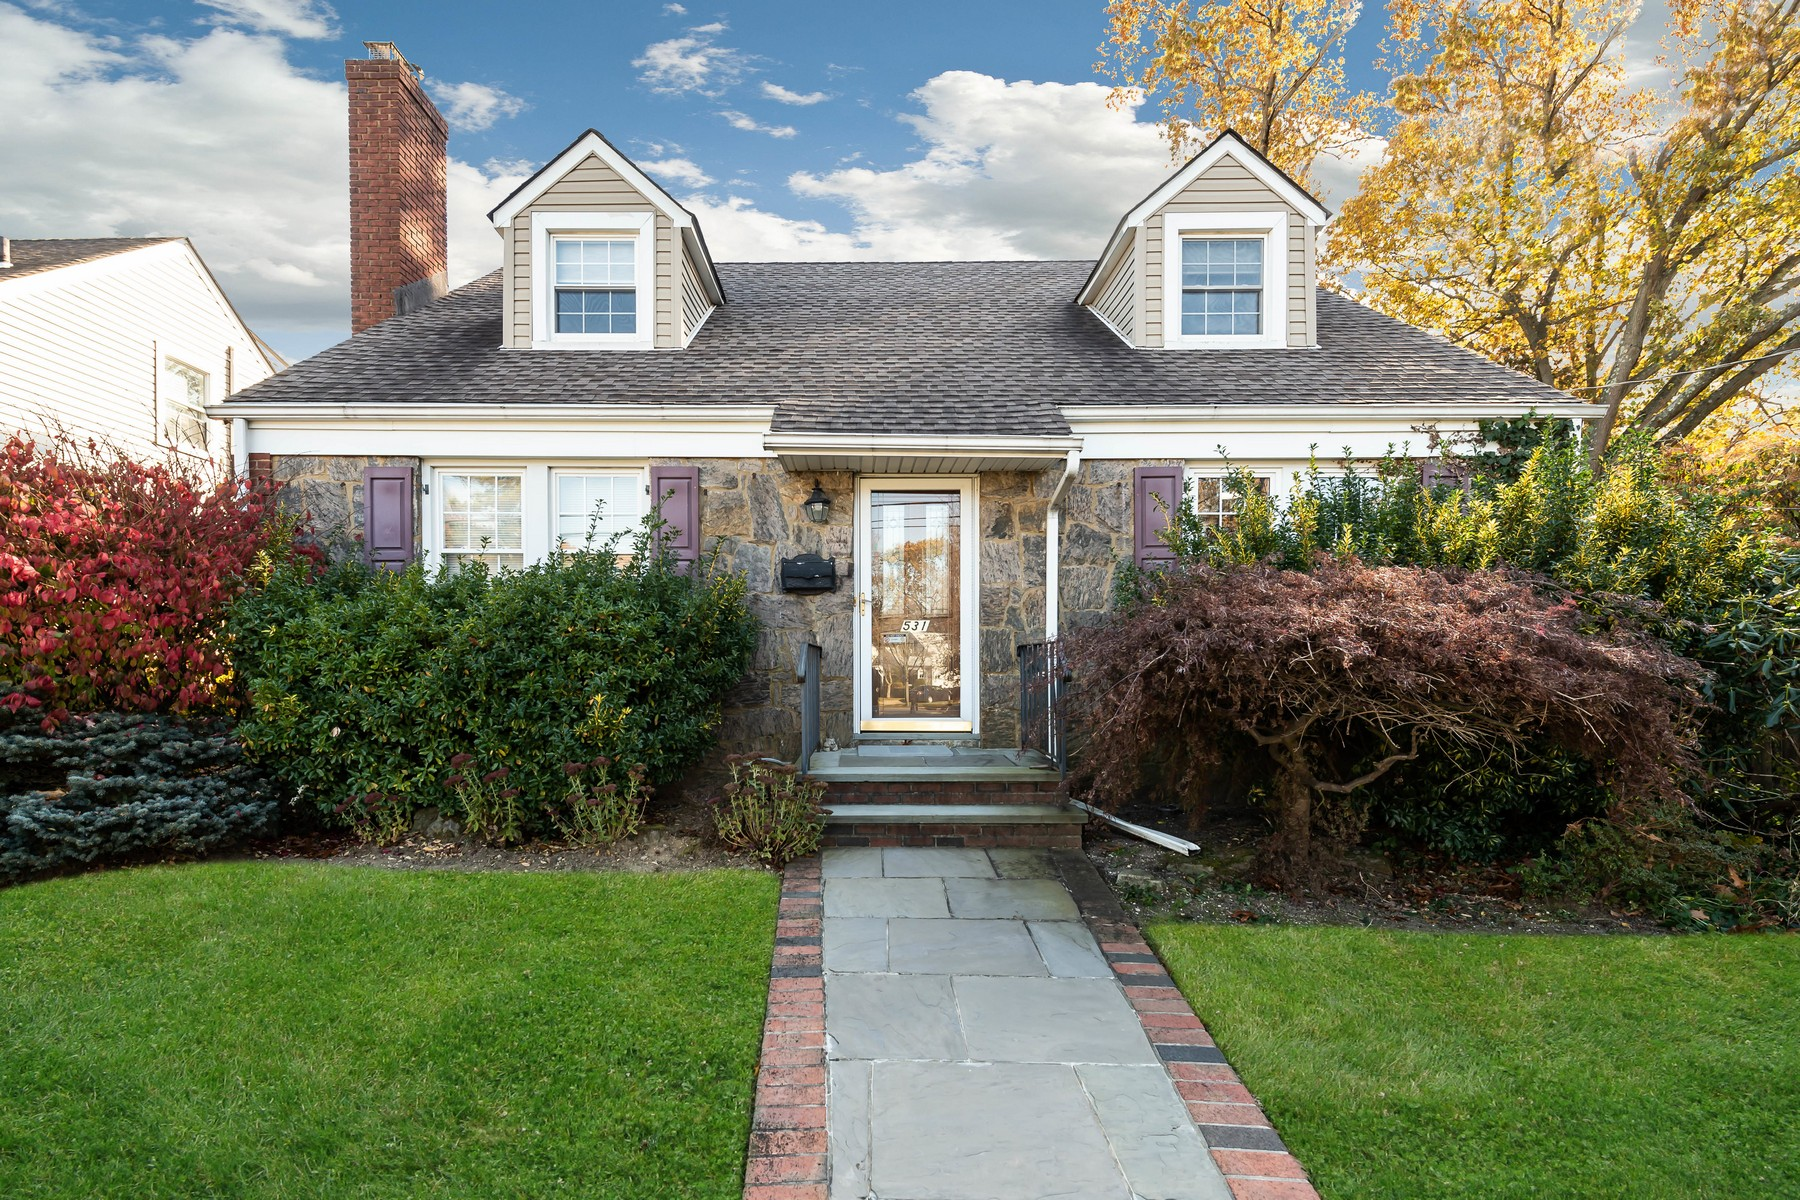 Single Family Homes for Active at W. Hempstead 531 Harding Ave West Hempstead, New York 11552 United States